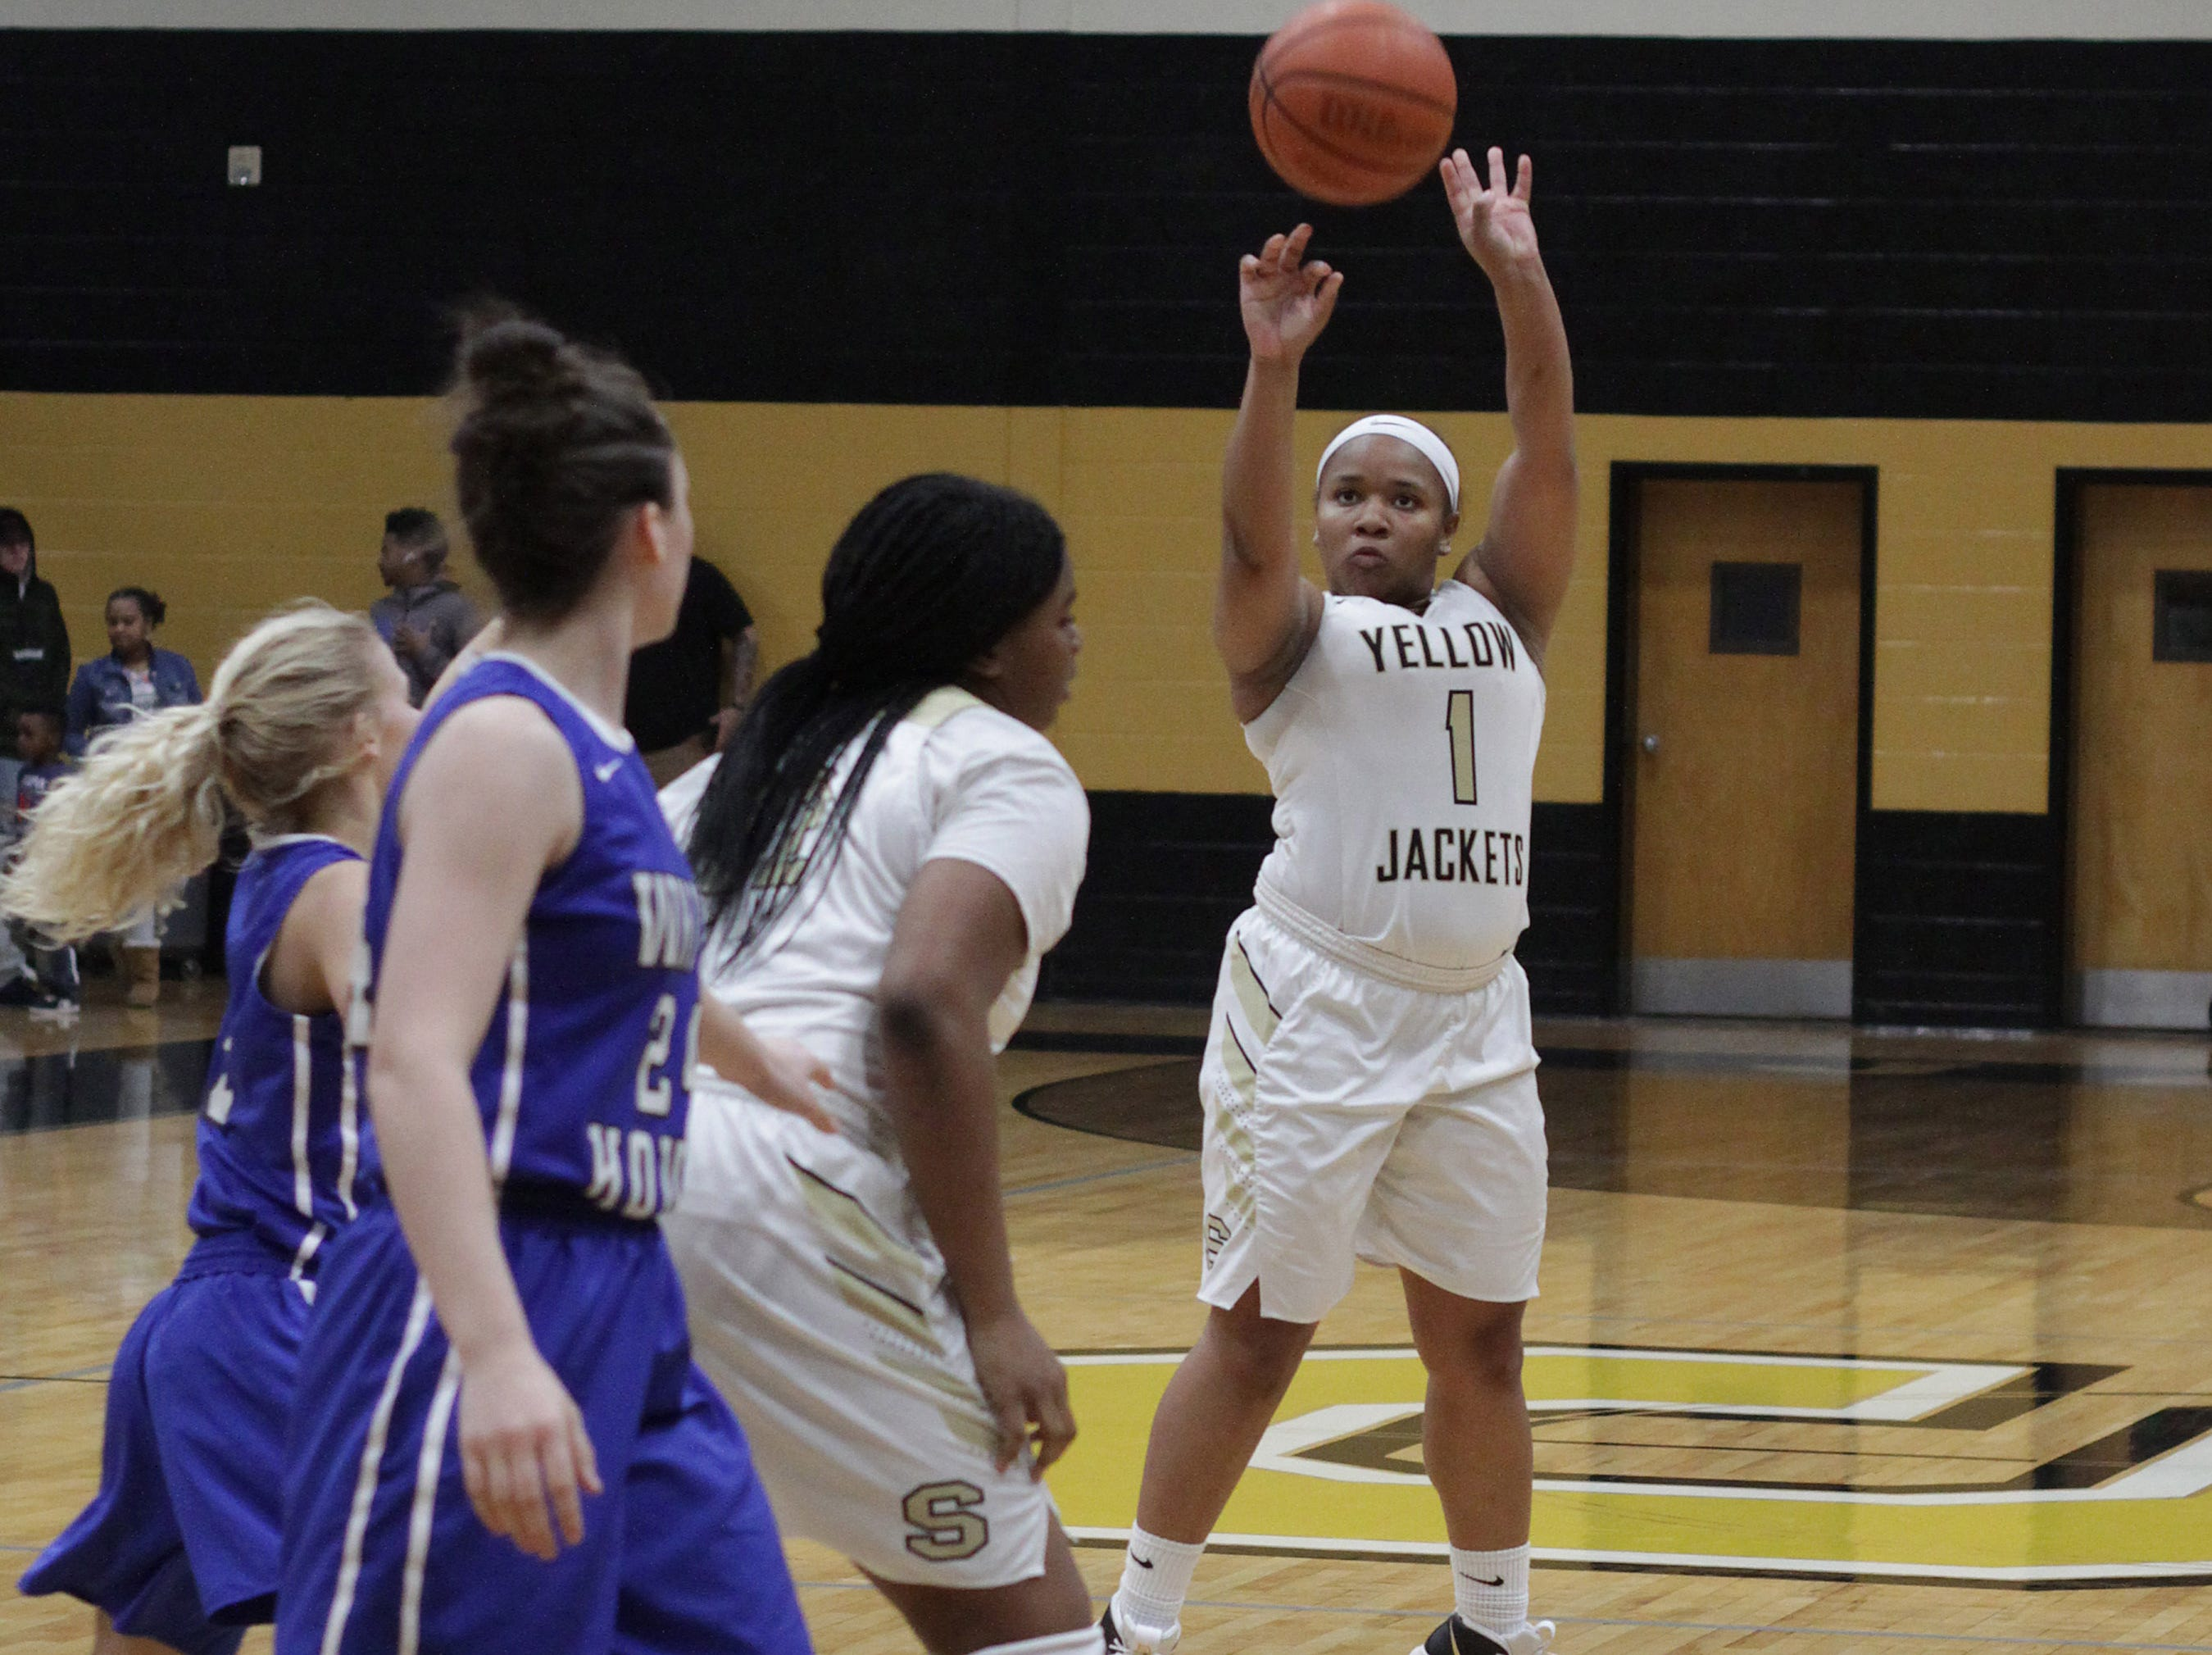 Springfield's Marina Sherrod shoots a jumper against White House on Tuesday, December 18, 2018.